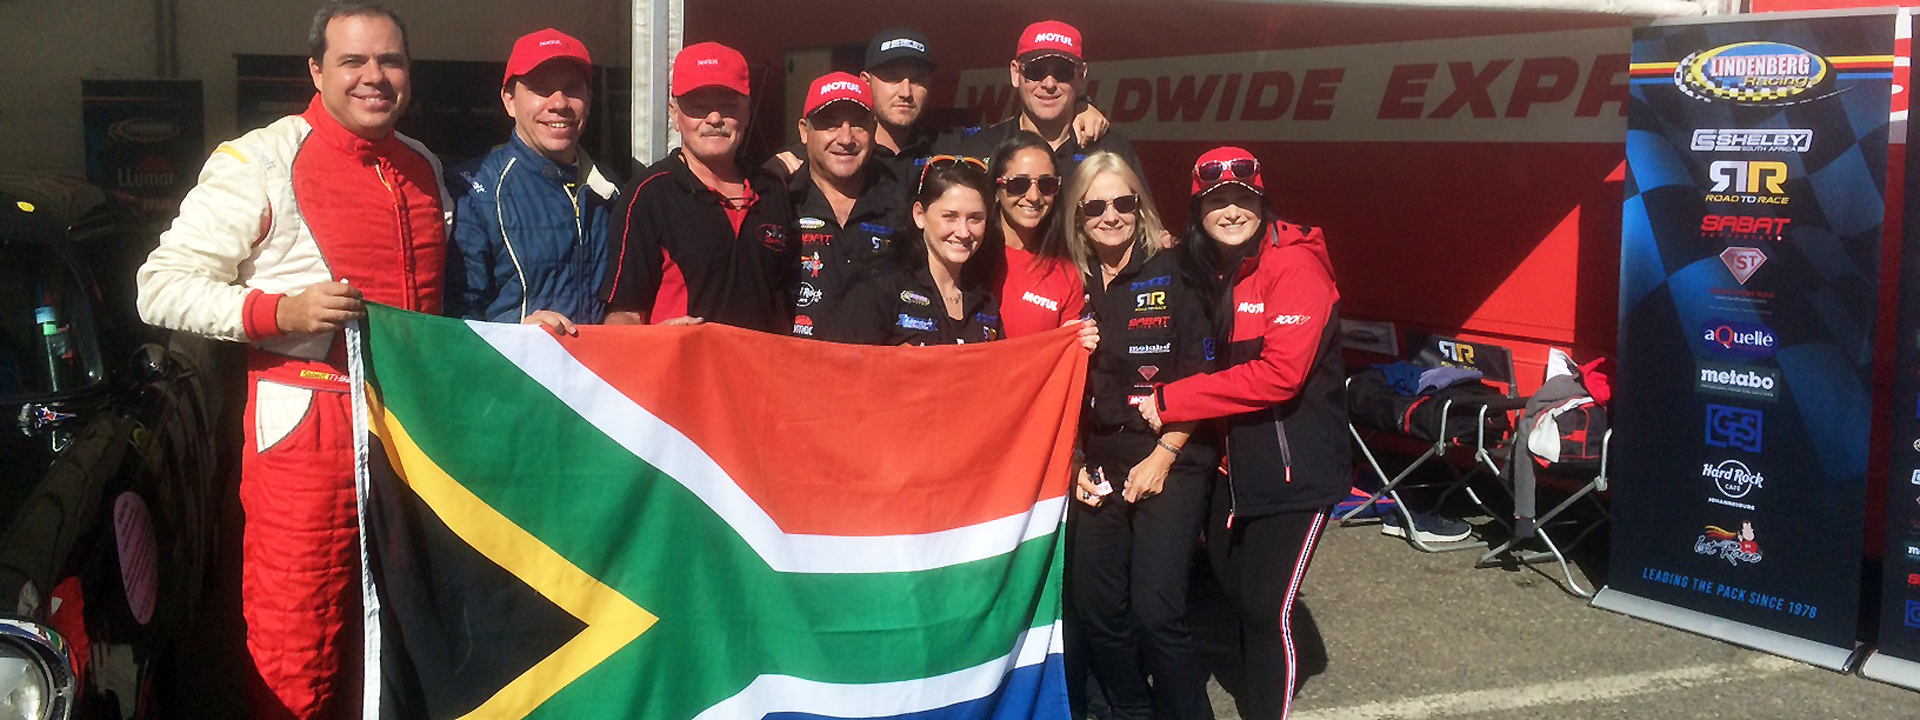 South Africans impress at Brands Hatch historic international